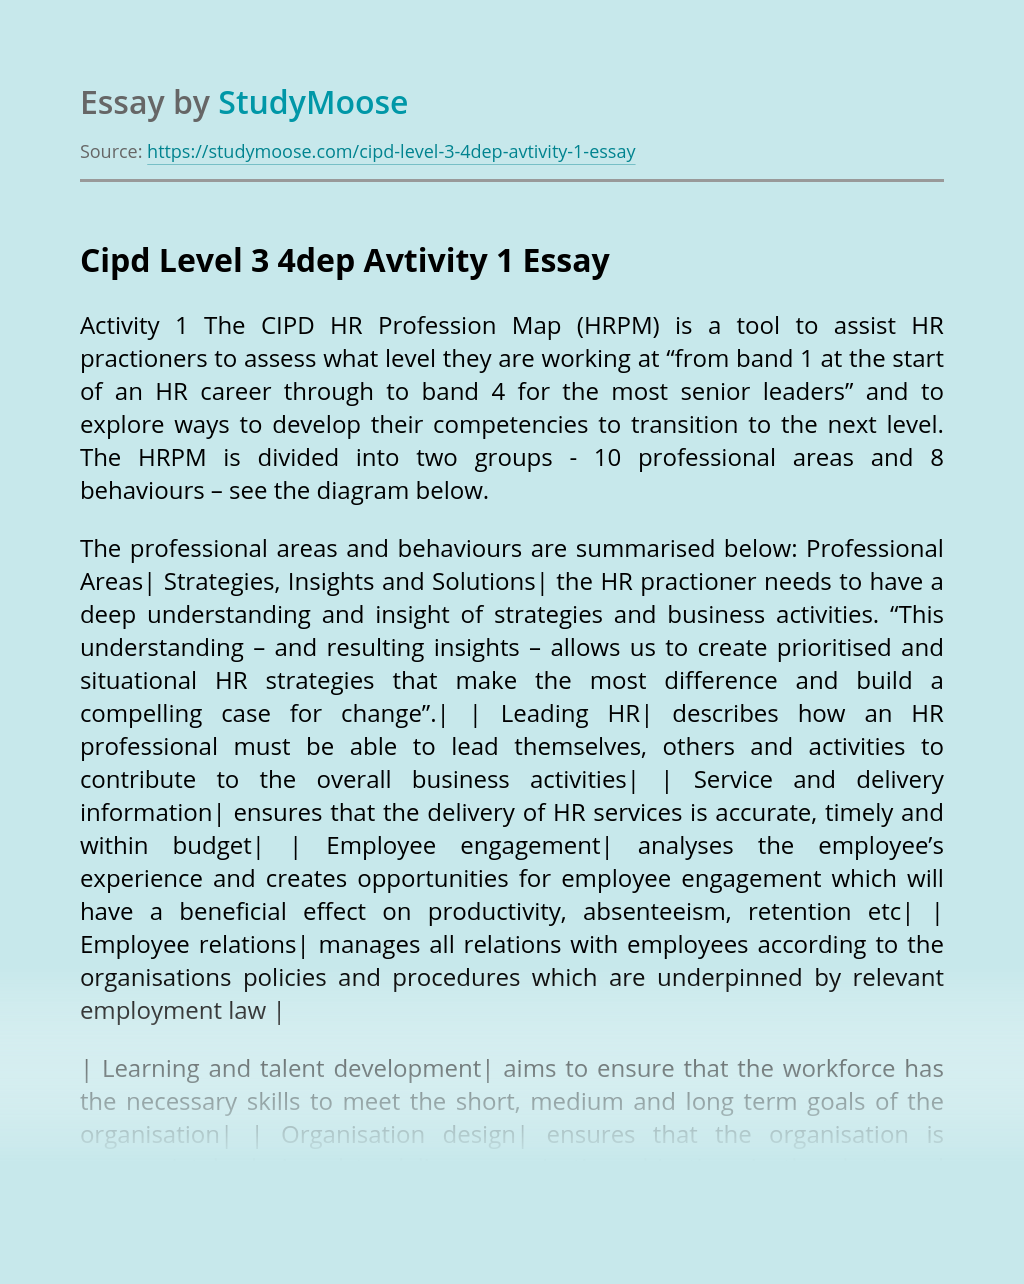 Cipd Level 3 4dep Avtivity 1